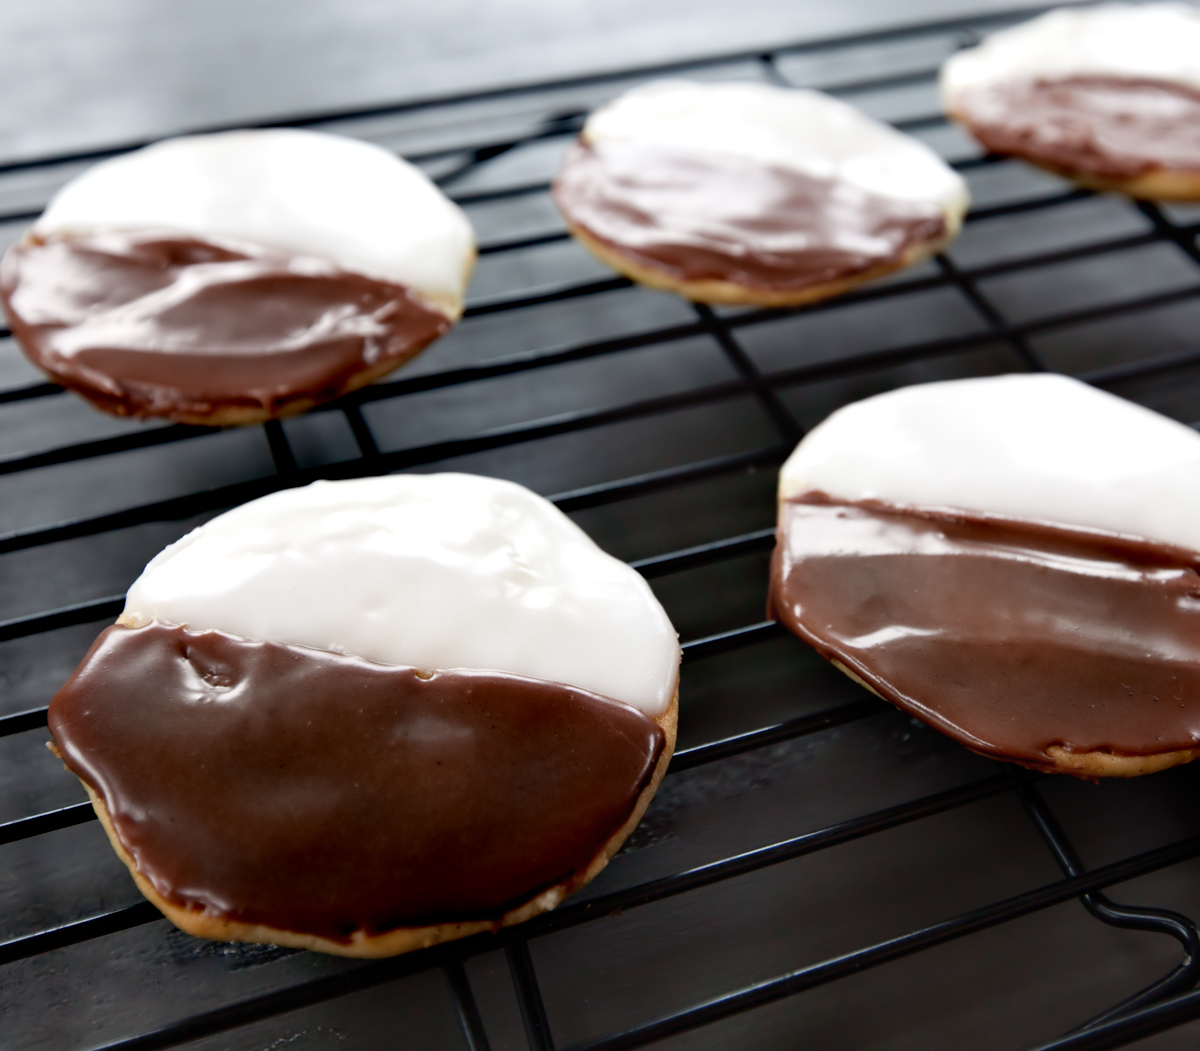 shiny black and white cookies on a cooling rack